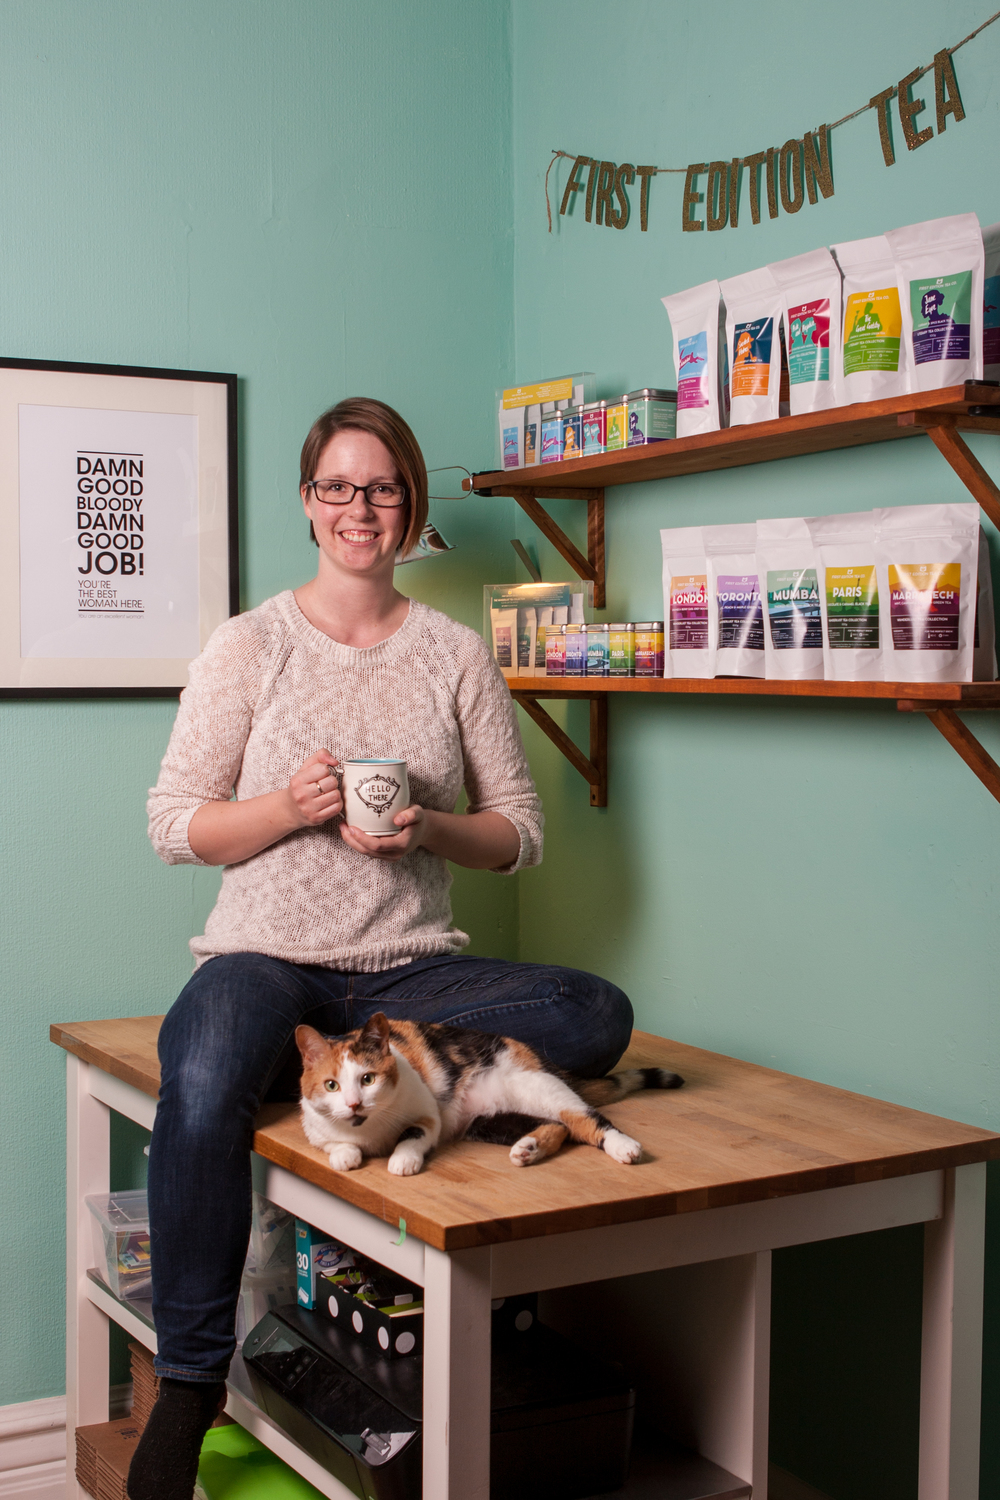 Stephanie Sandercock, Owner and TAC Certified Tea Sommelier (with special guest Butters the Calico cat)